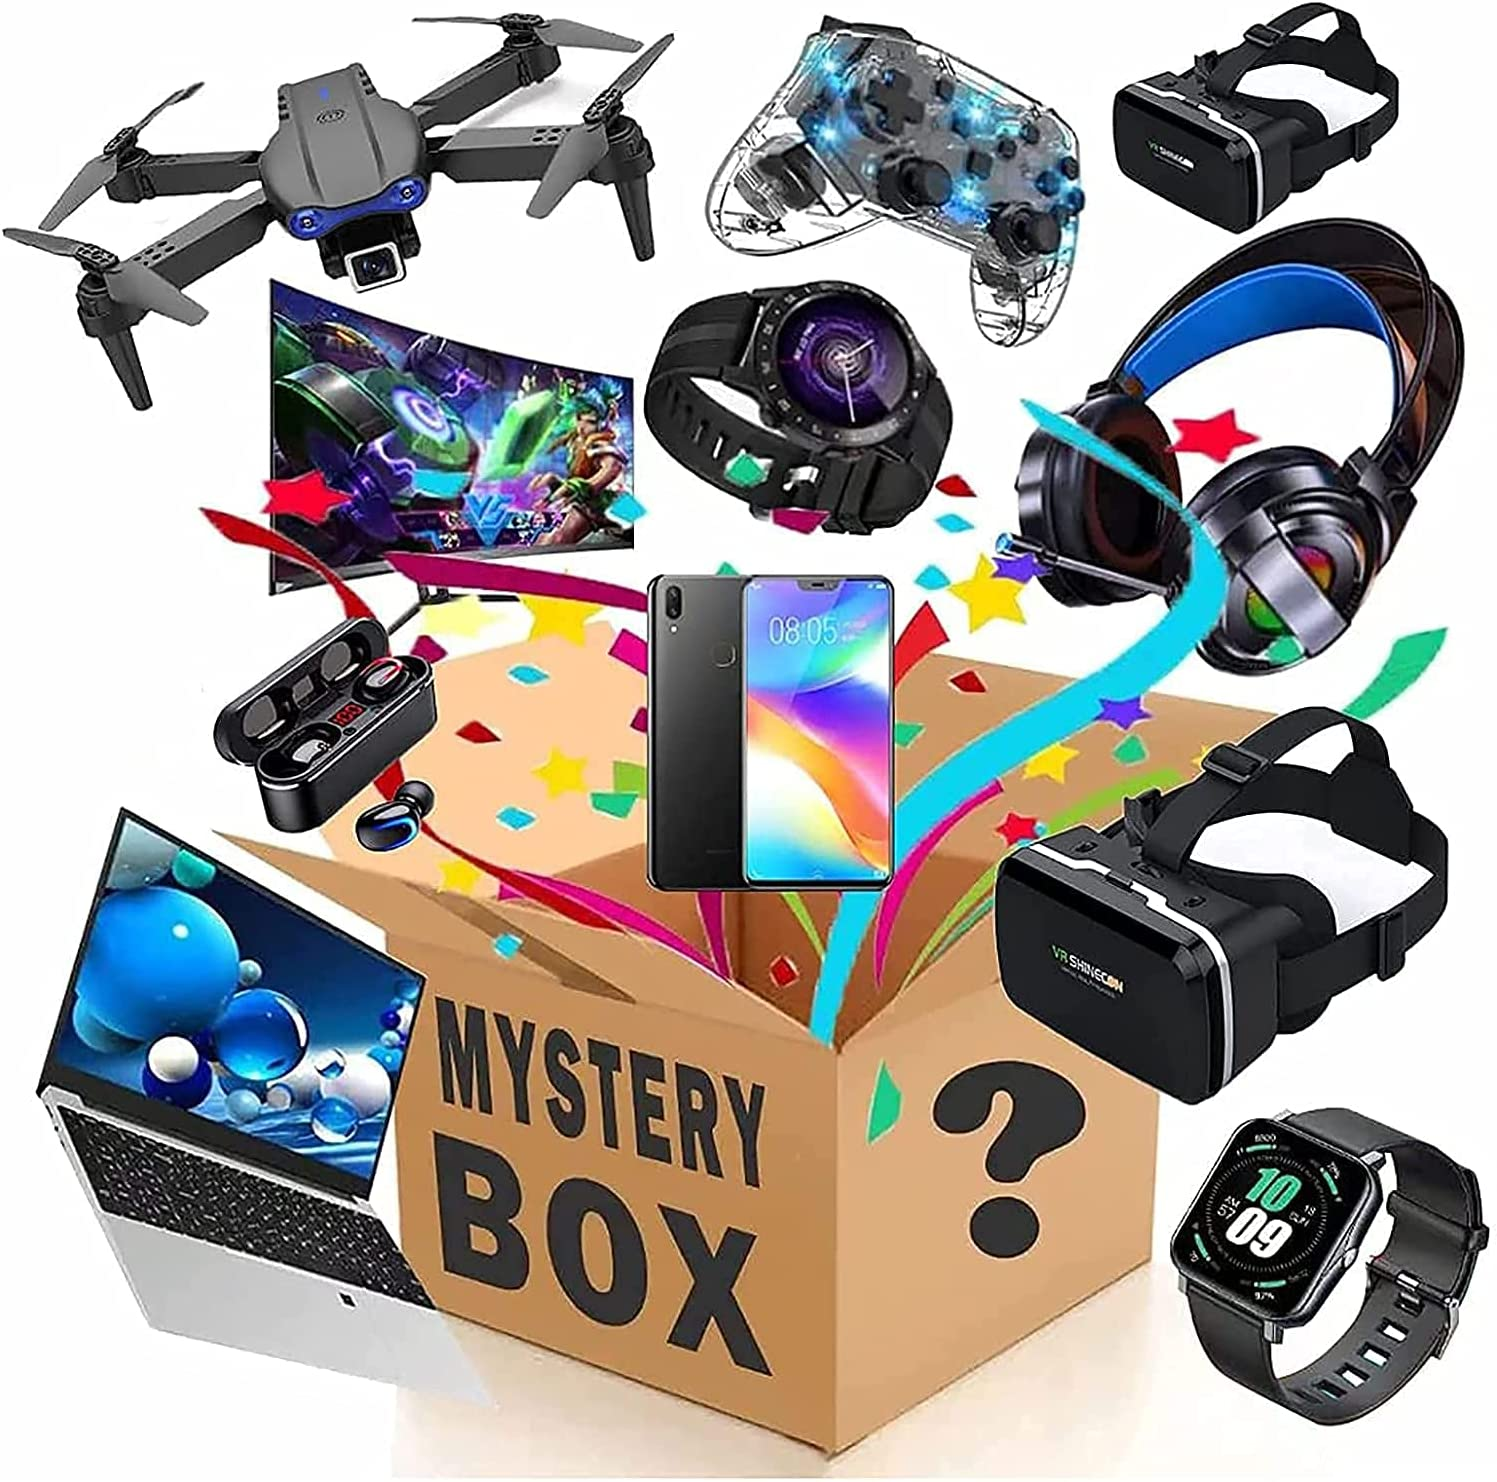 Mystery Box Electronics Limited time trial price Boxes OFFicial site Birt Random